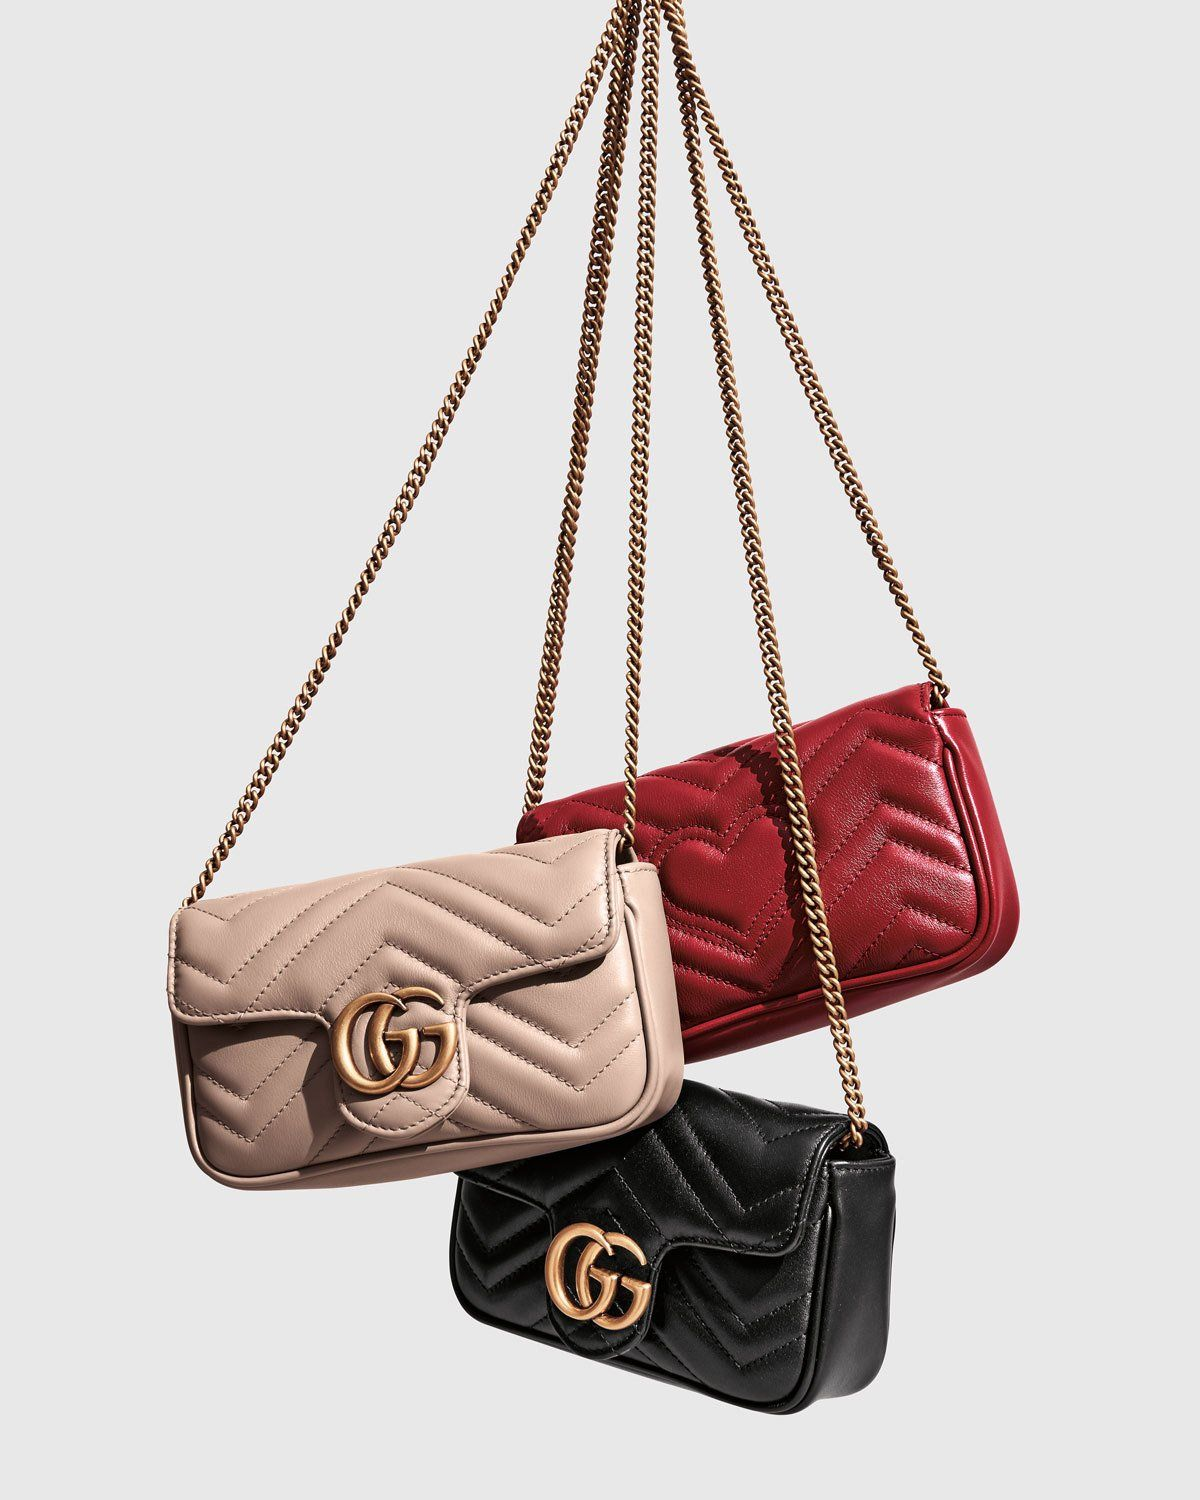 24fdba6a8de Gucci GG Marmont Matelasse Leather Super Mini Bag in 2019